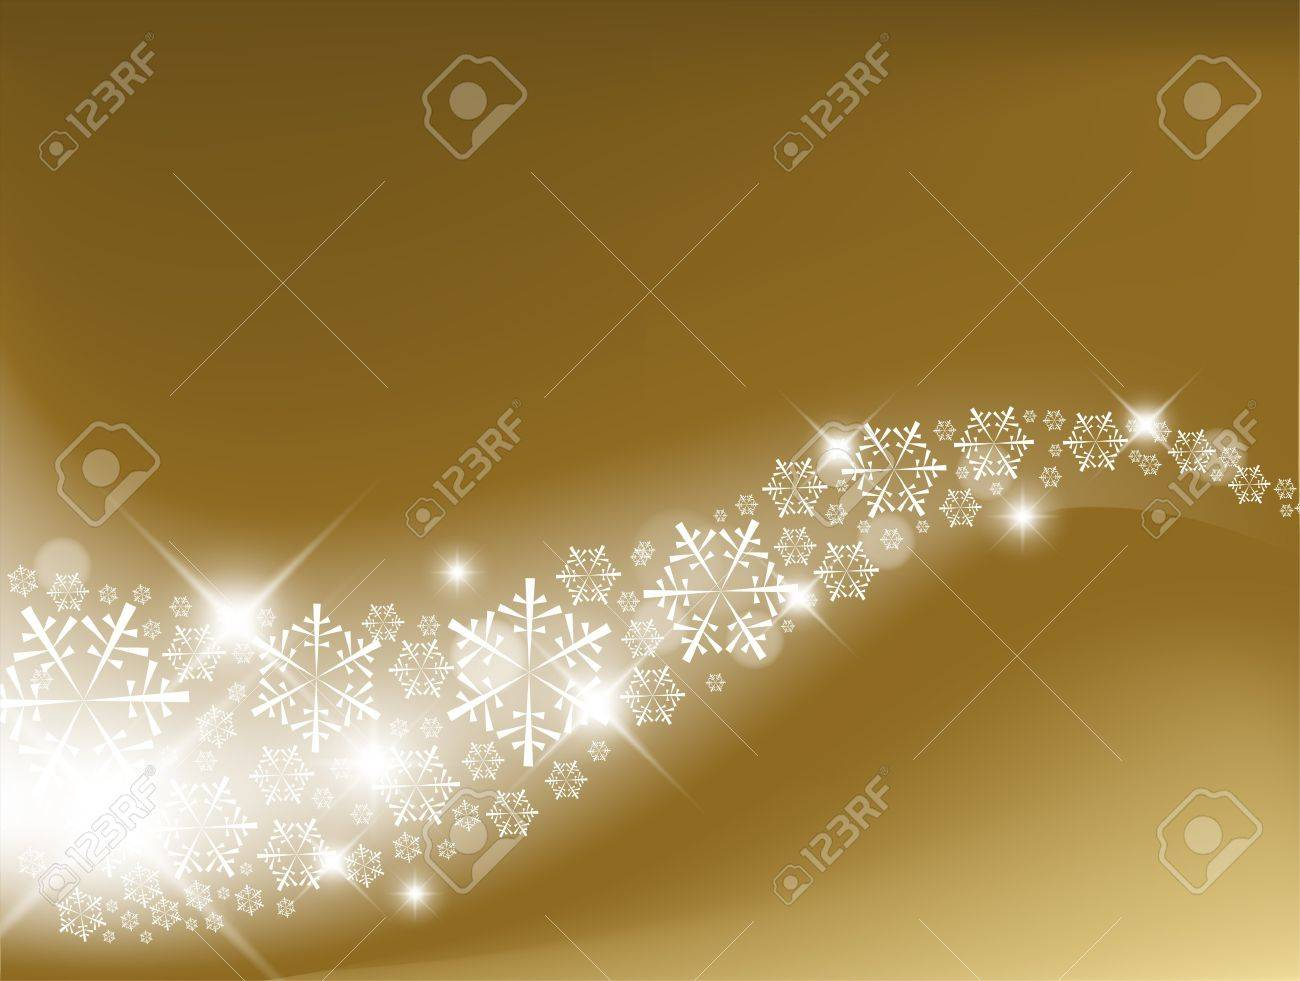 Golden Abstract Christmas background with white snowflakes Stock Vector - 7779203